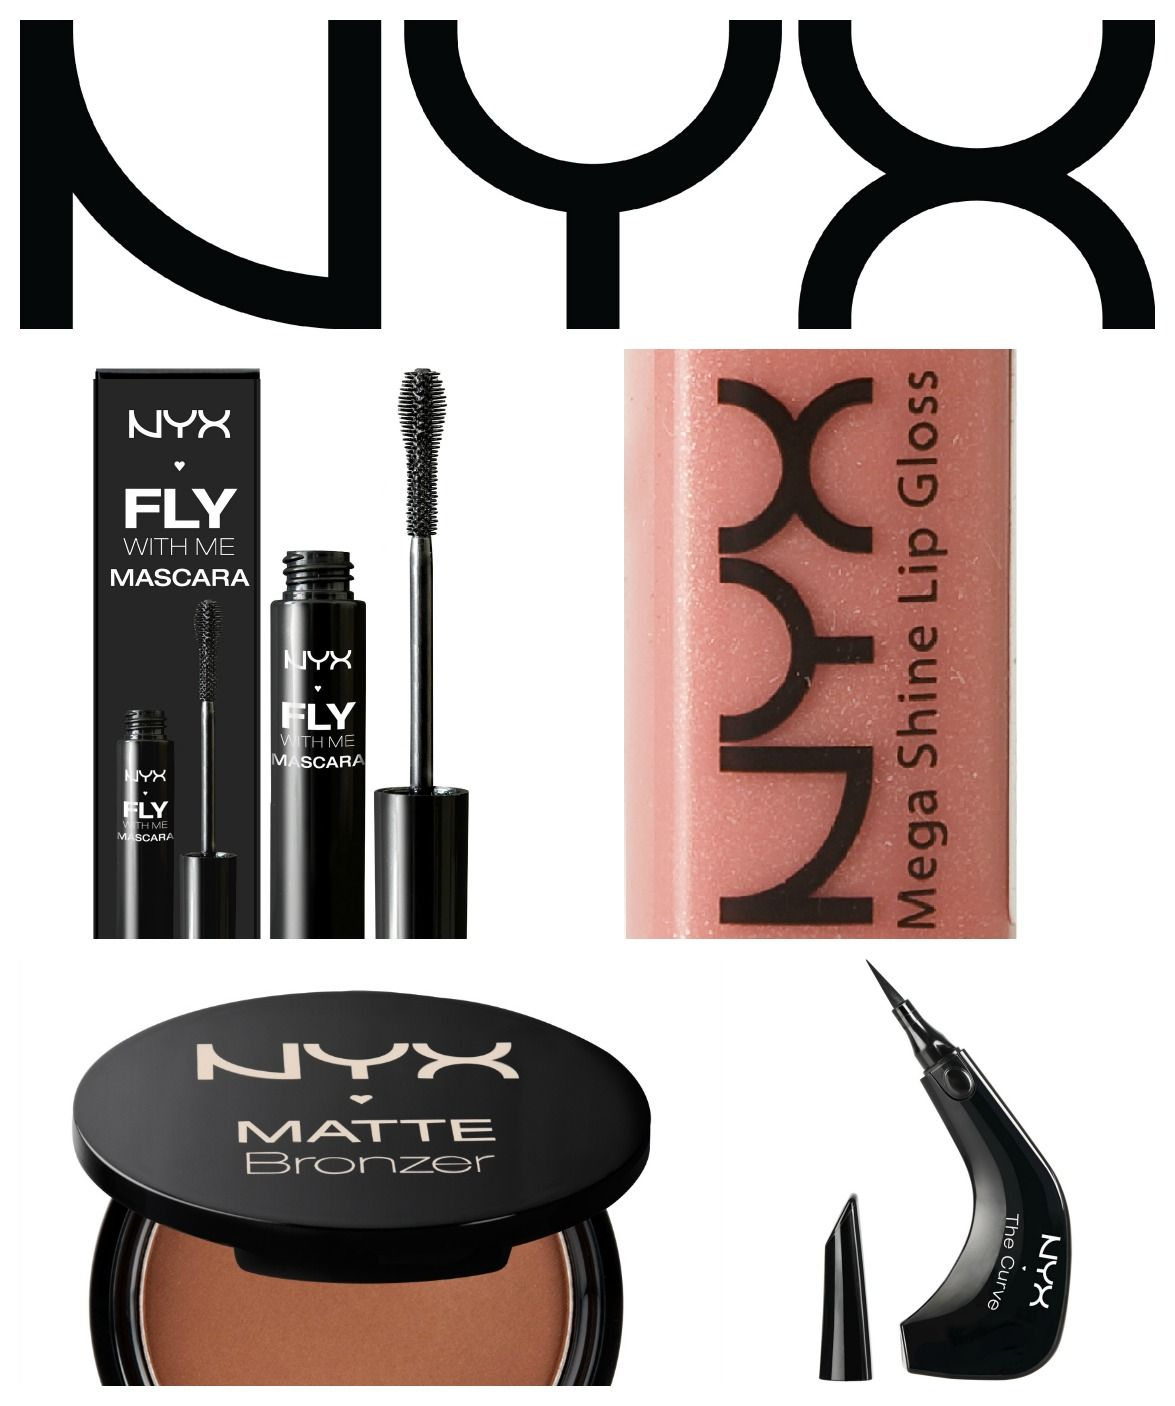 Runner up makeup kit courtesy of Nyx Cosmetics!